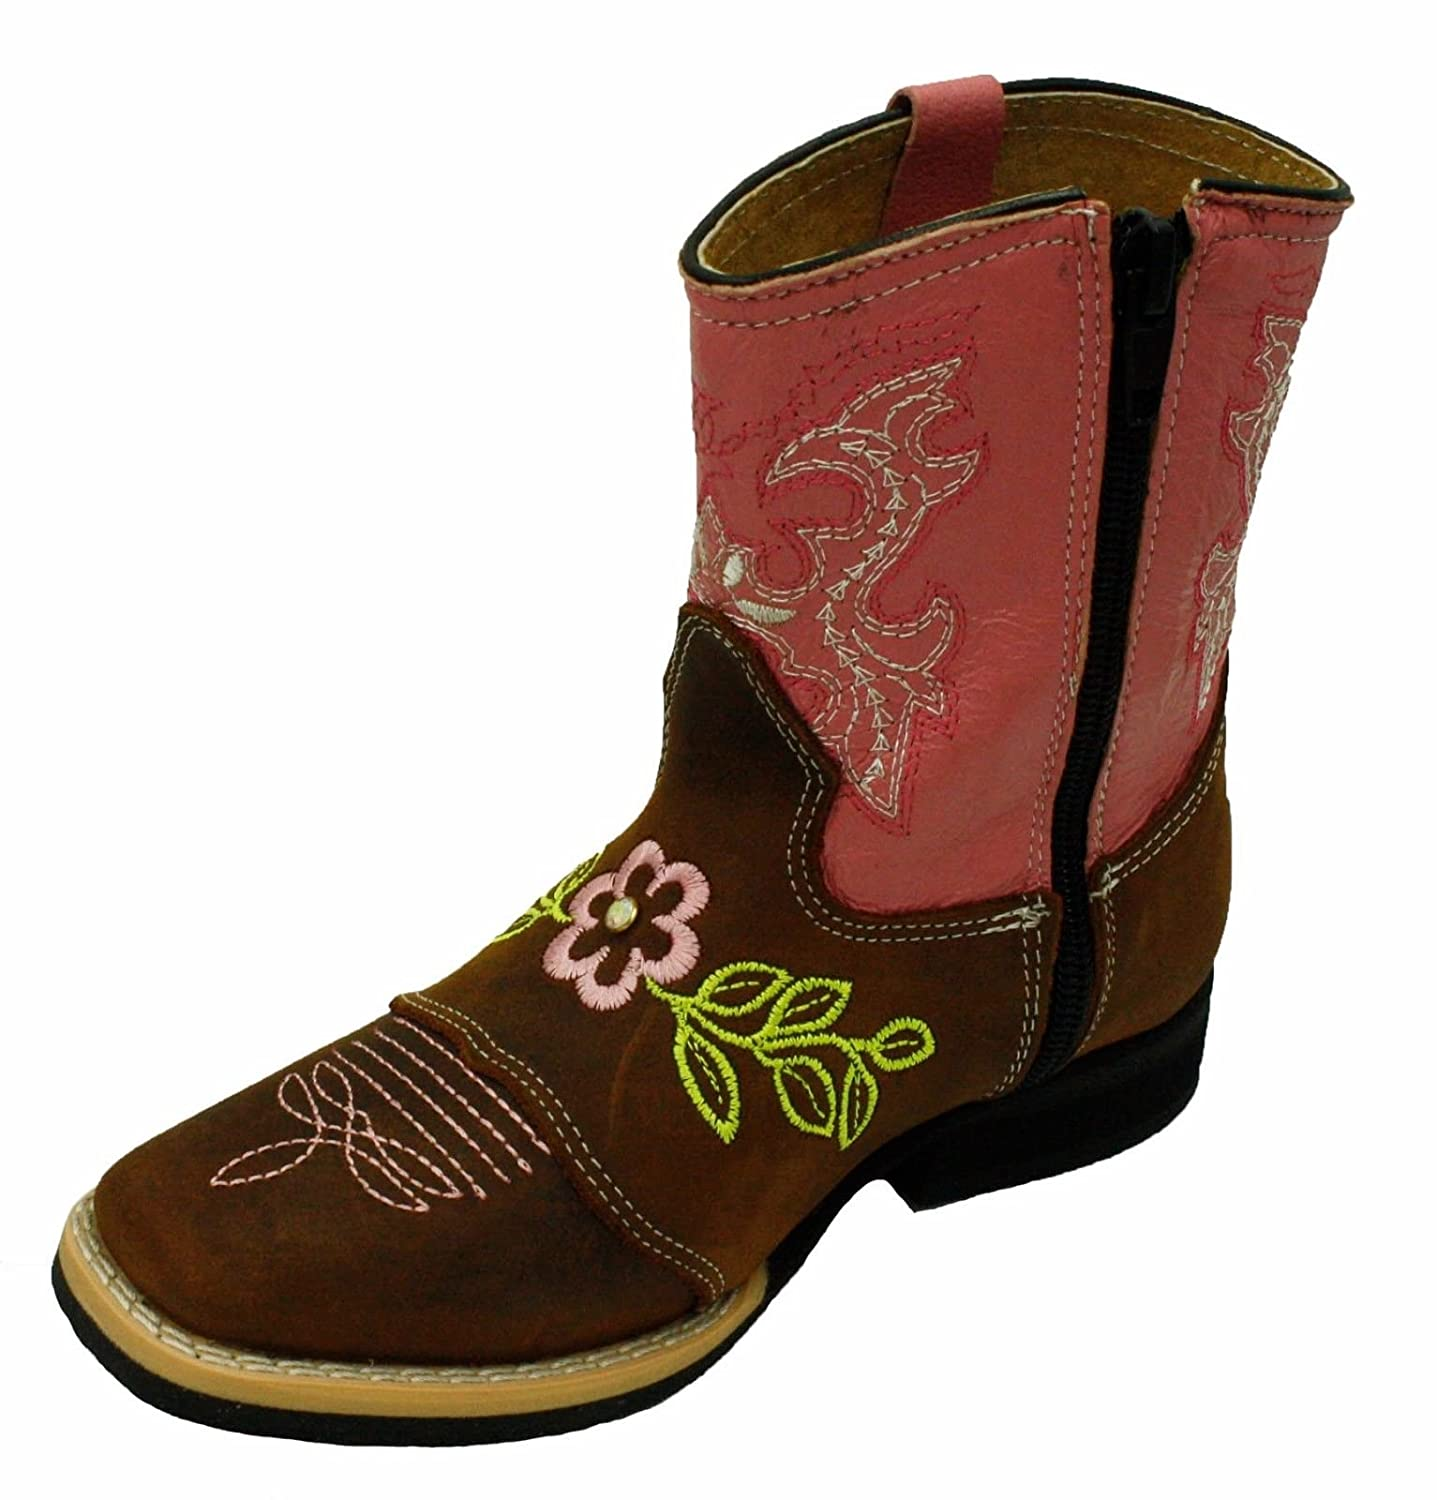 Kids Unisex Genuine Leather Western Rodeo Cowboy Side Zipper Boots Tan Pink-Toddler-10